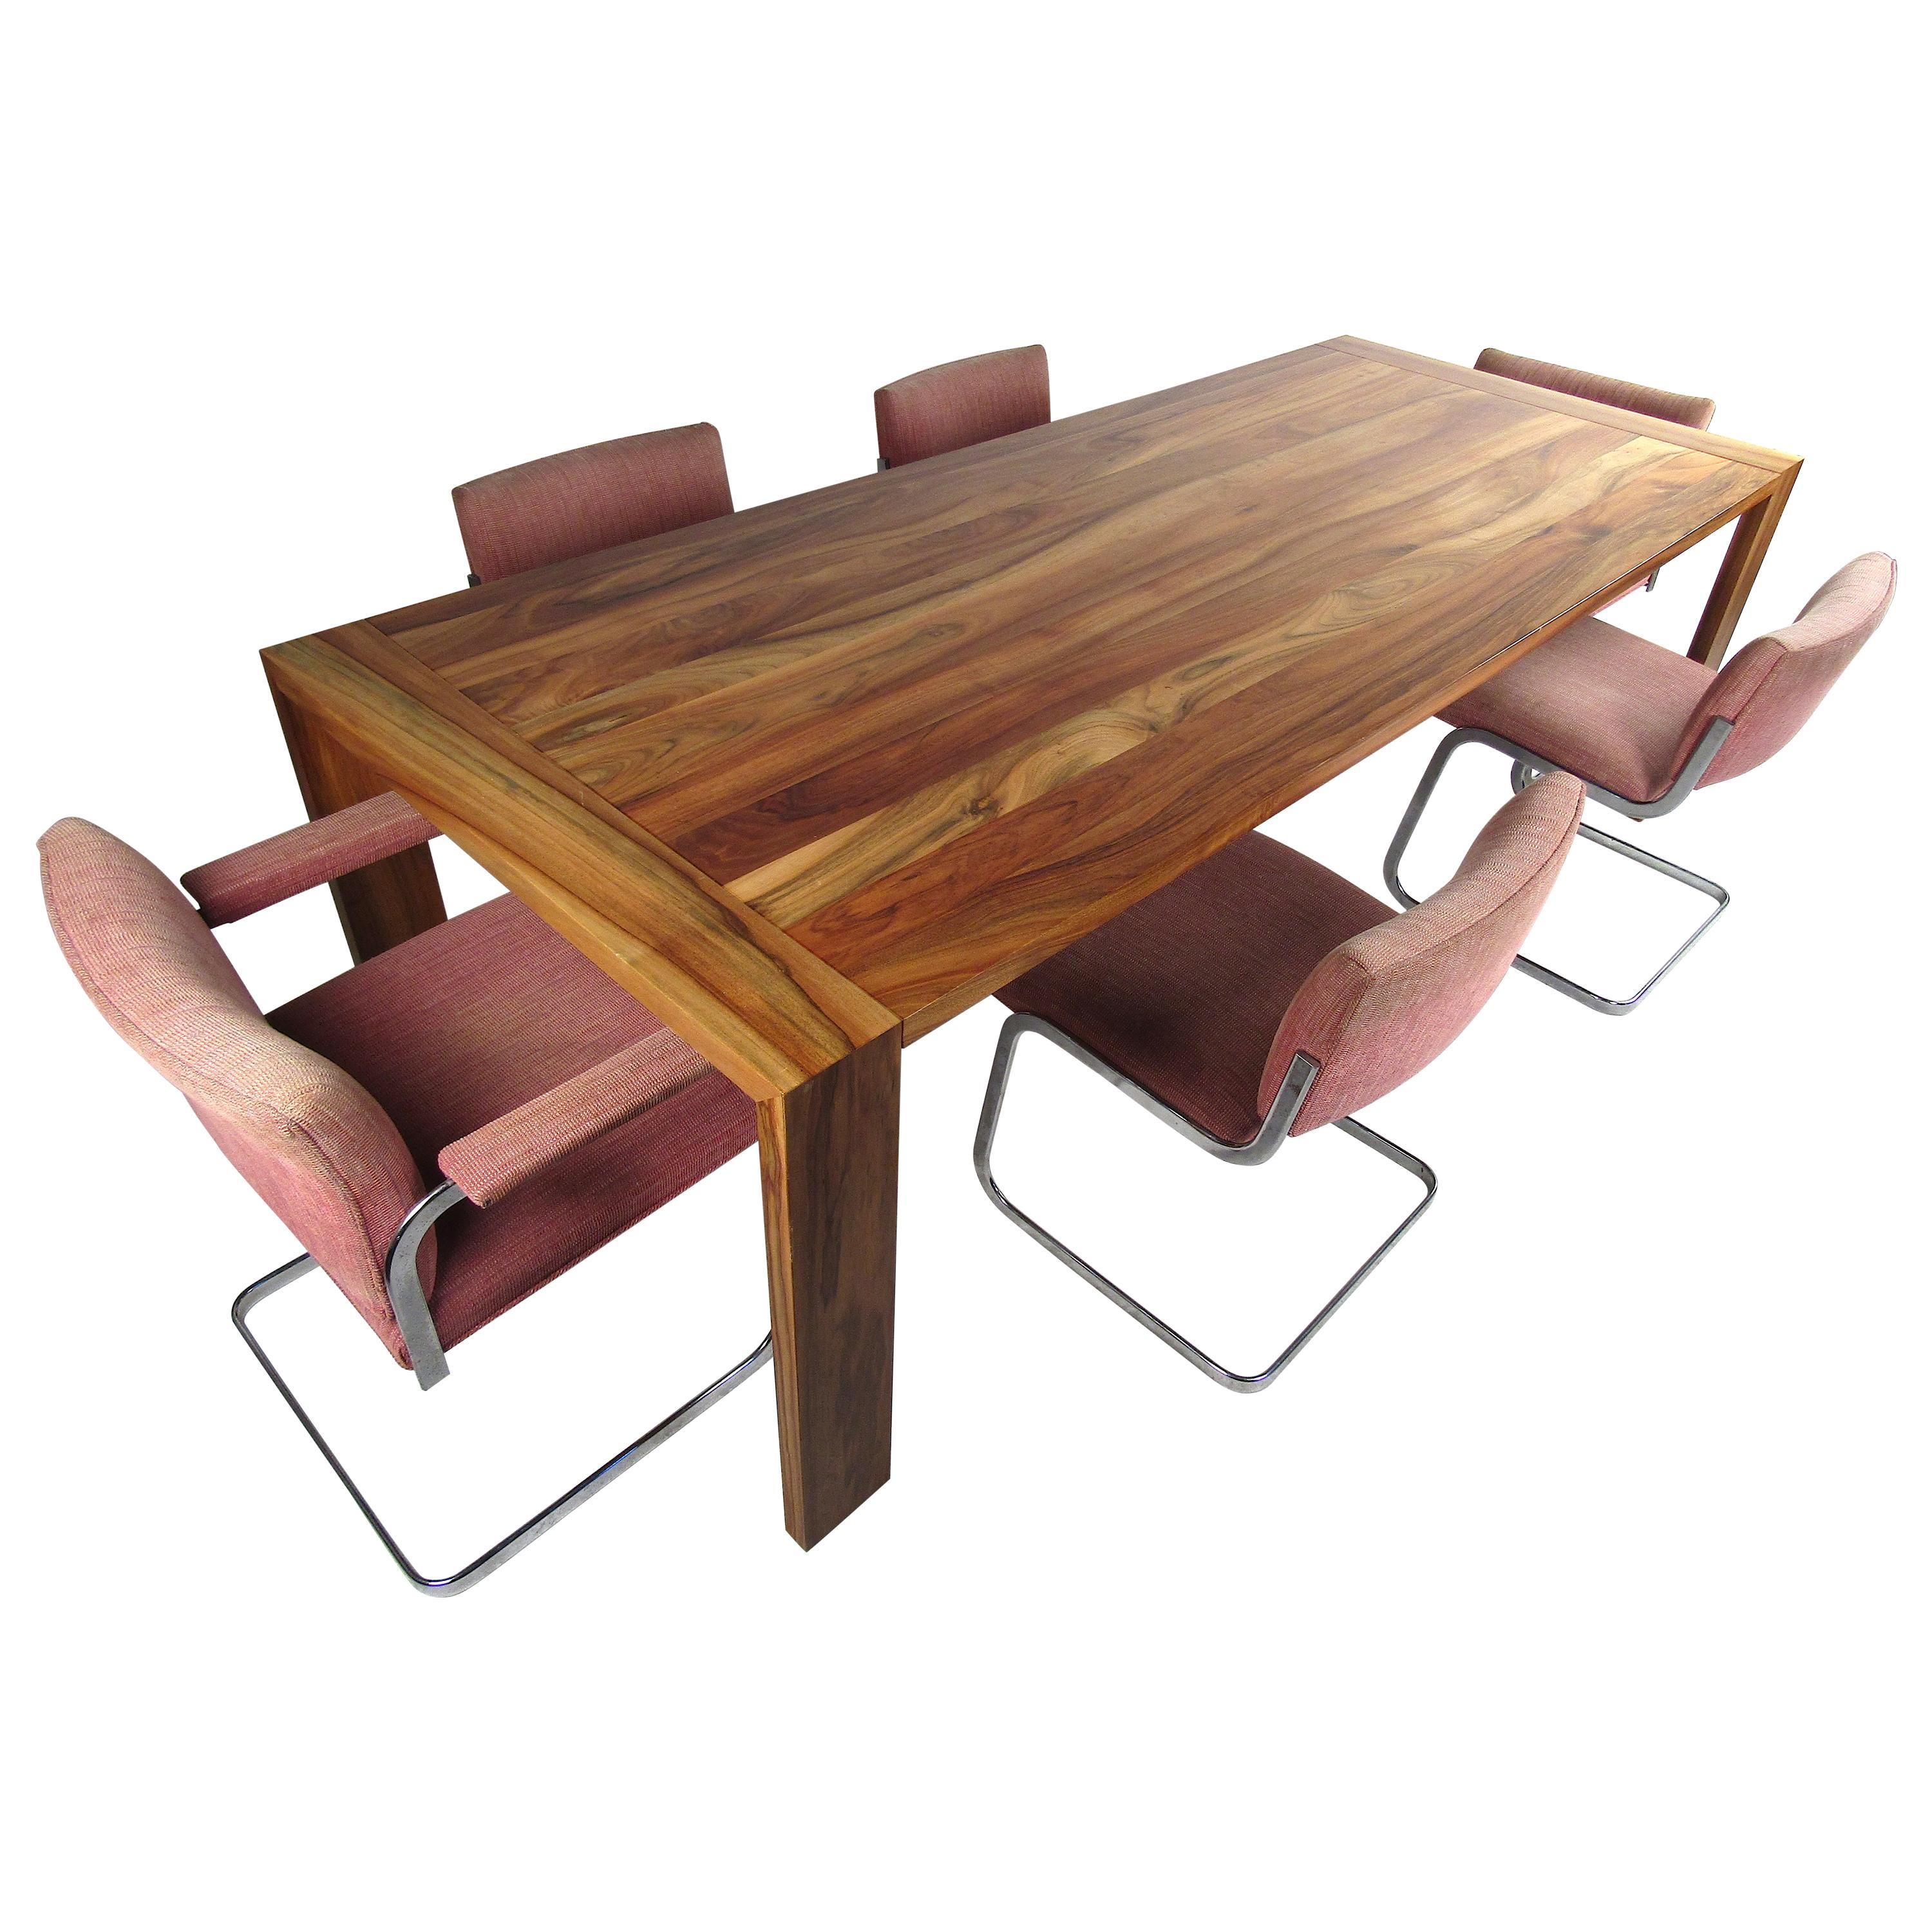 Vintage Modern Dining Set with Large Dining Table and Cantilevered Chairs